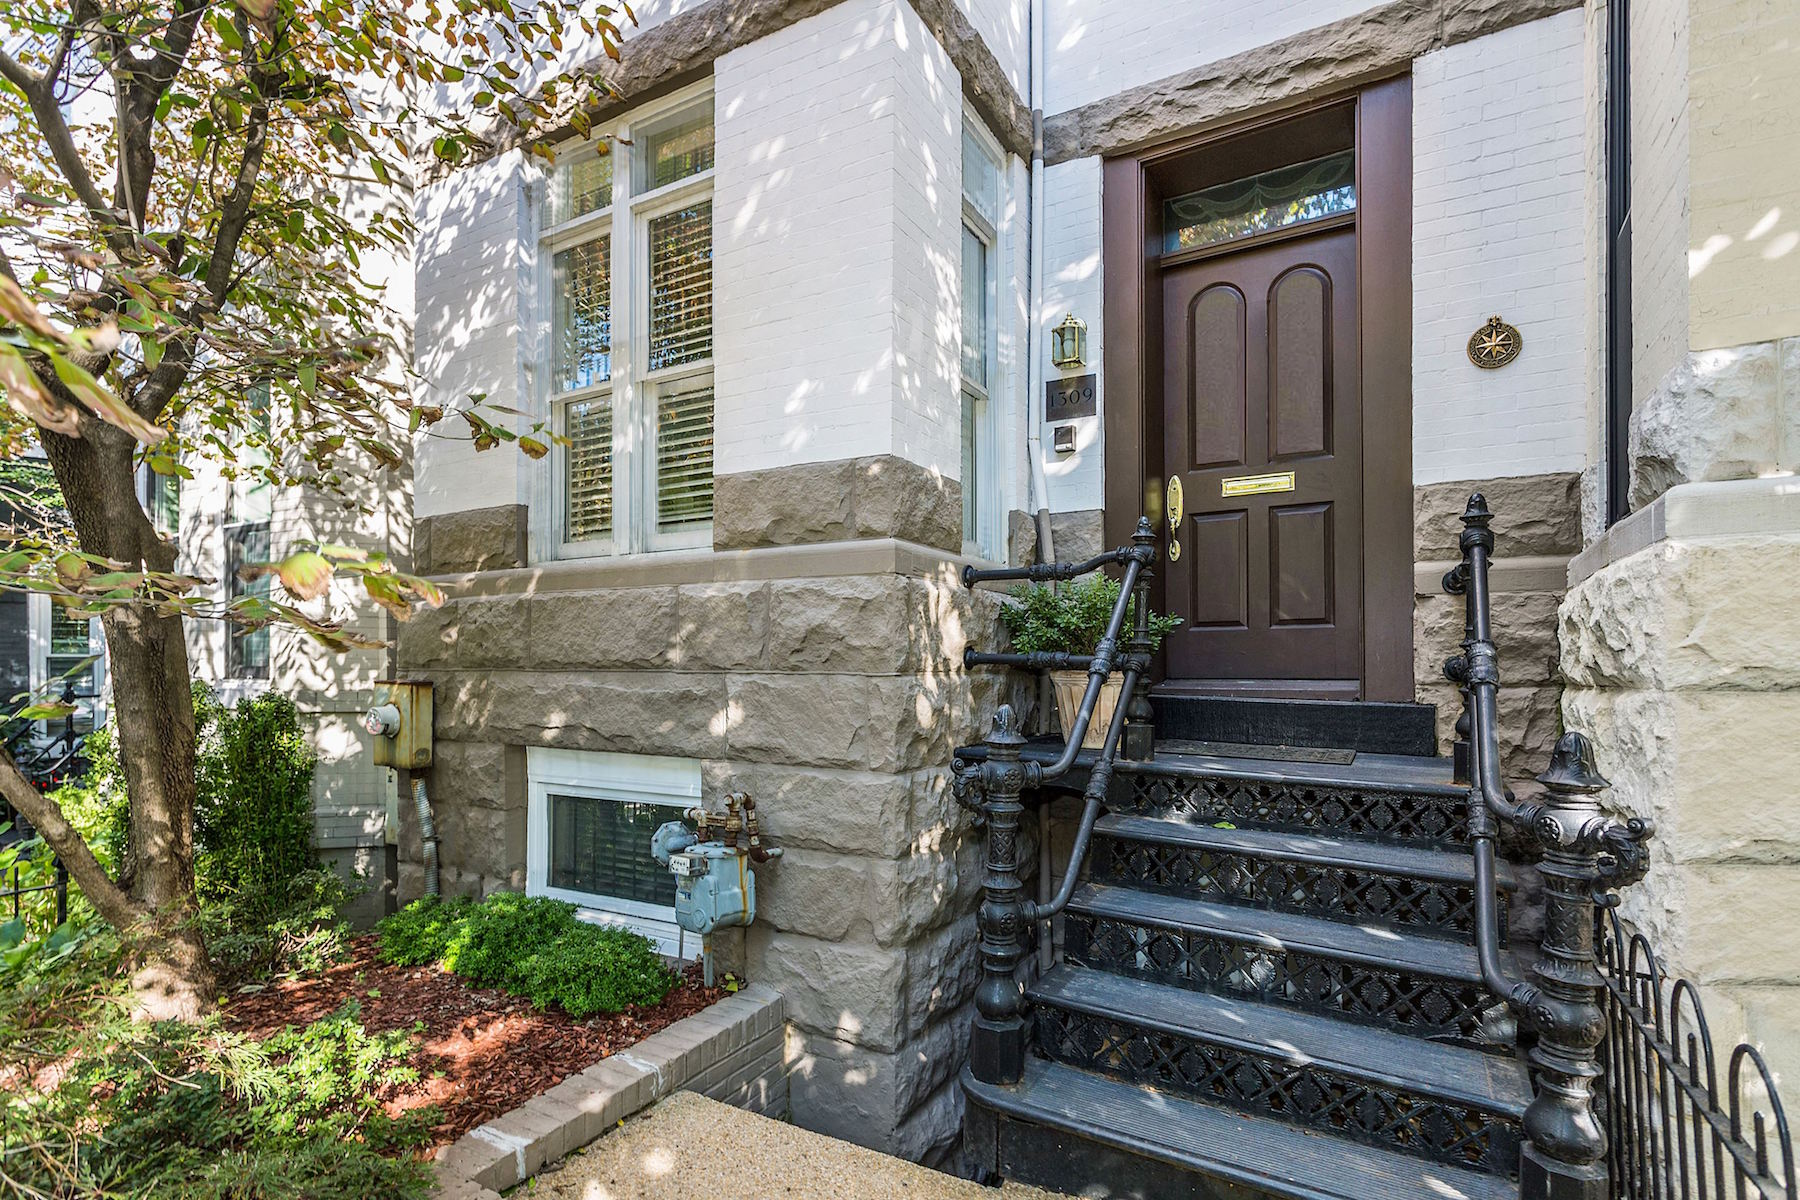 Townhouse for Sale at 1309 22nd St NW 1309 22nd St NW Washington, District Of Columbia 20037 United States